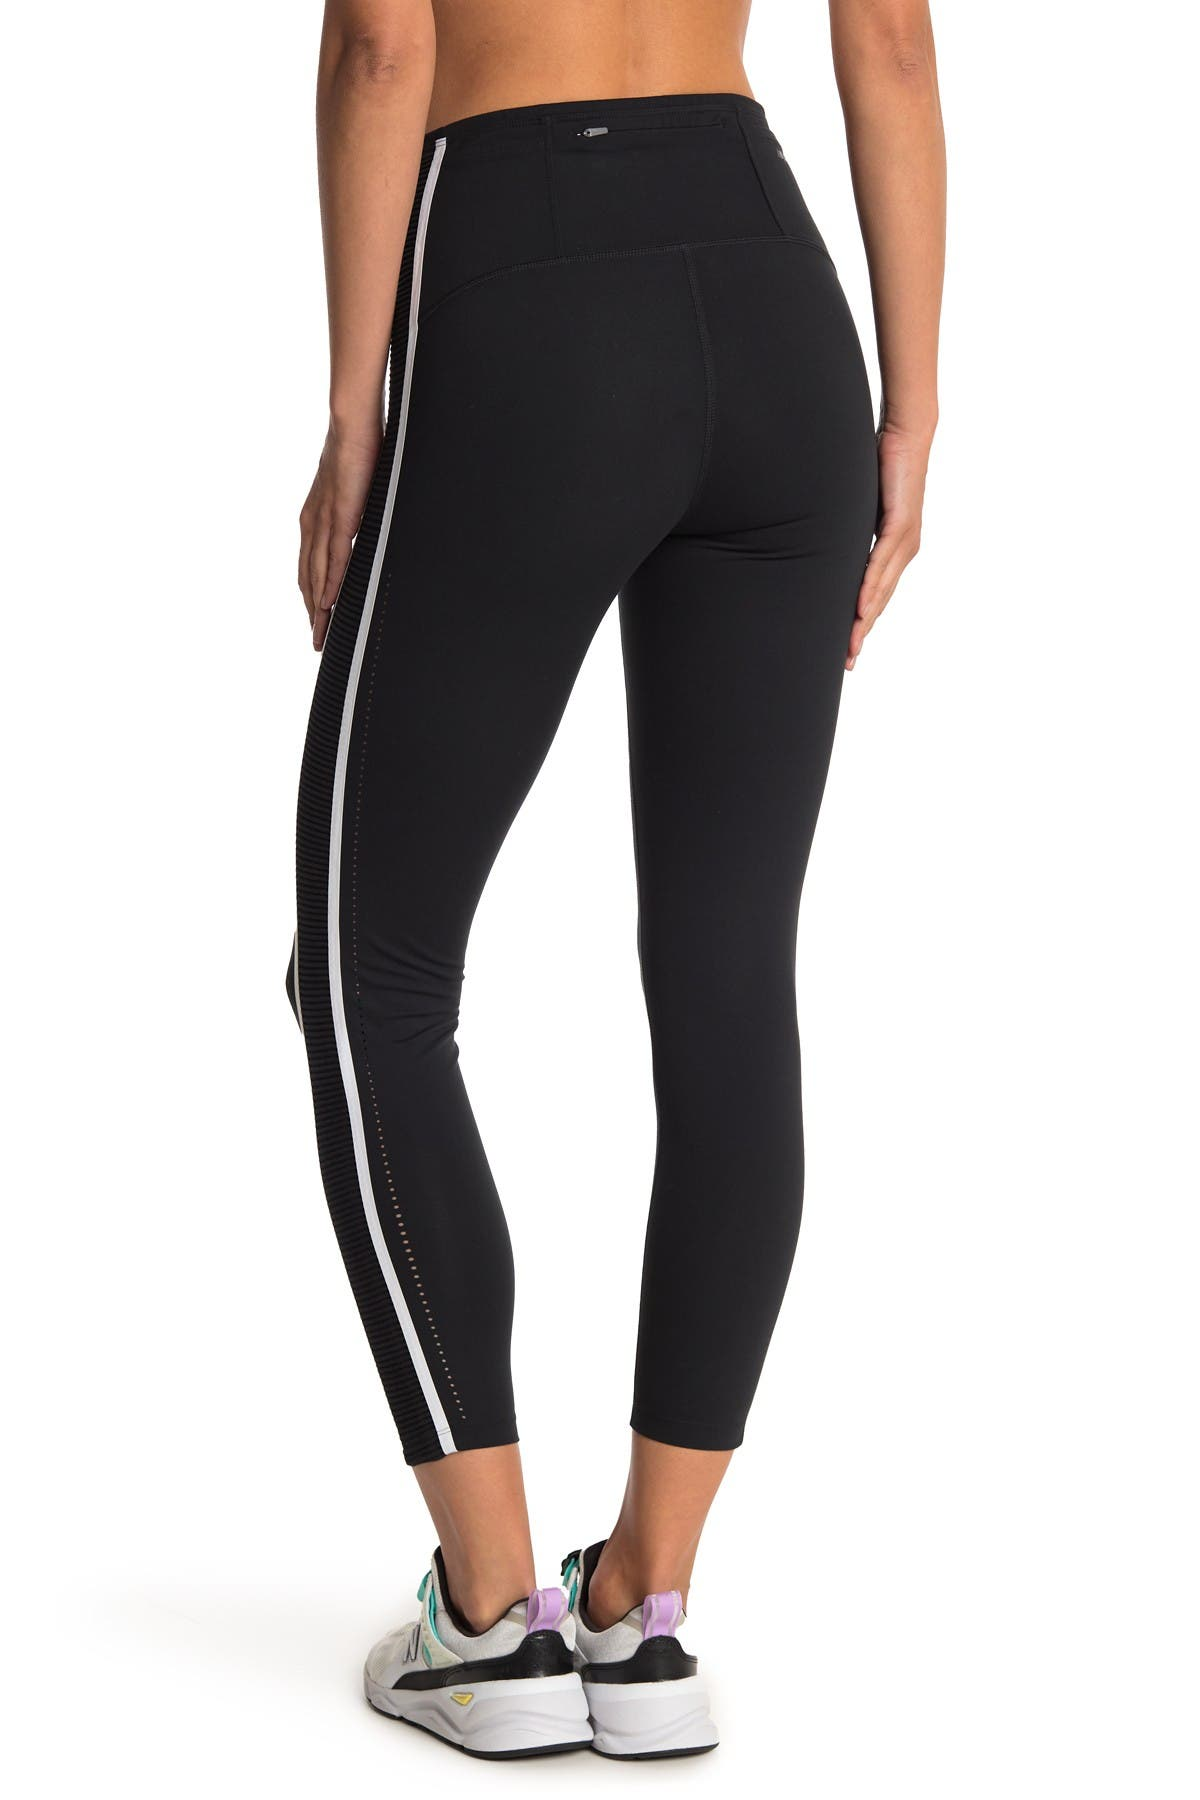 Image of New Balance Archive Run Tight Crop Leggings